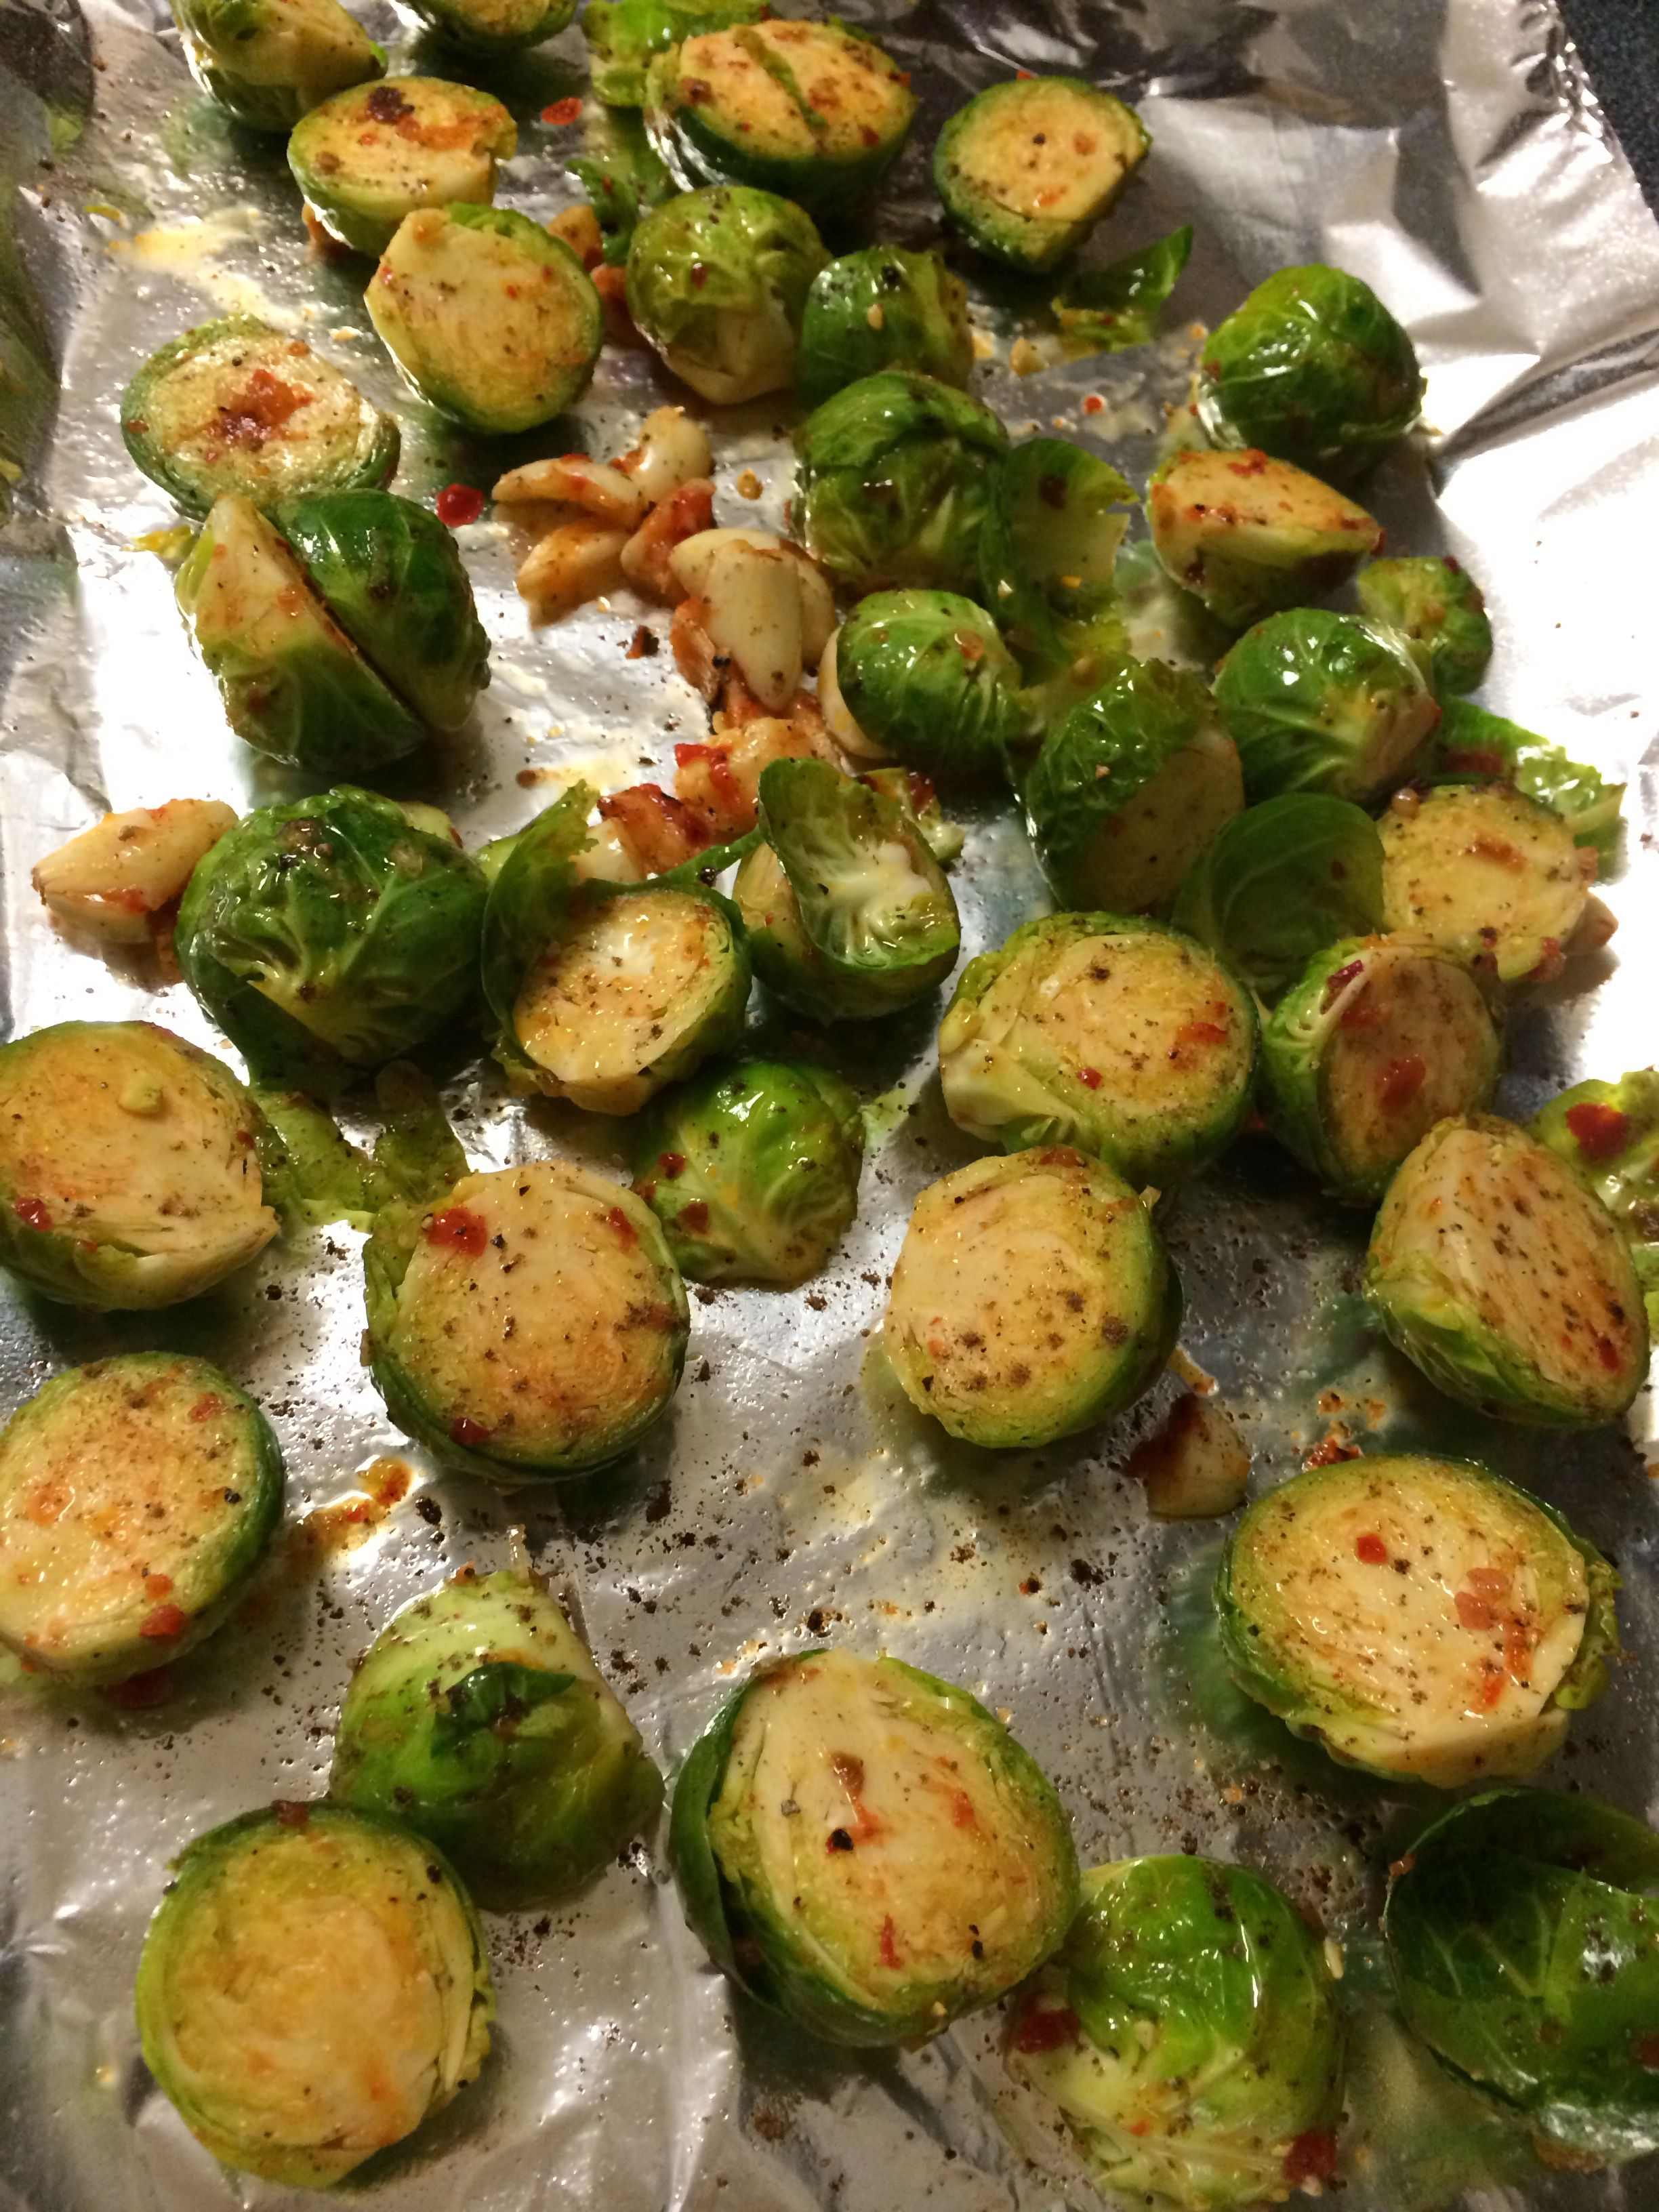 Brussels sprouts | Food by Hand | Pinterest | Sprouts, Brussels and ...